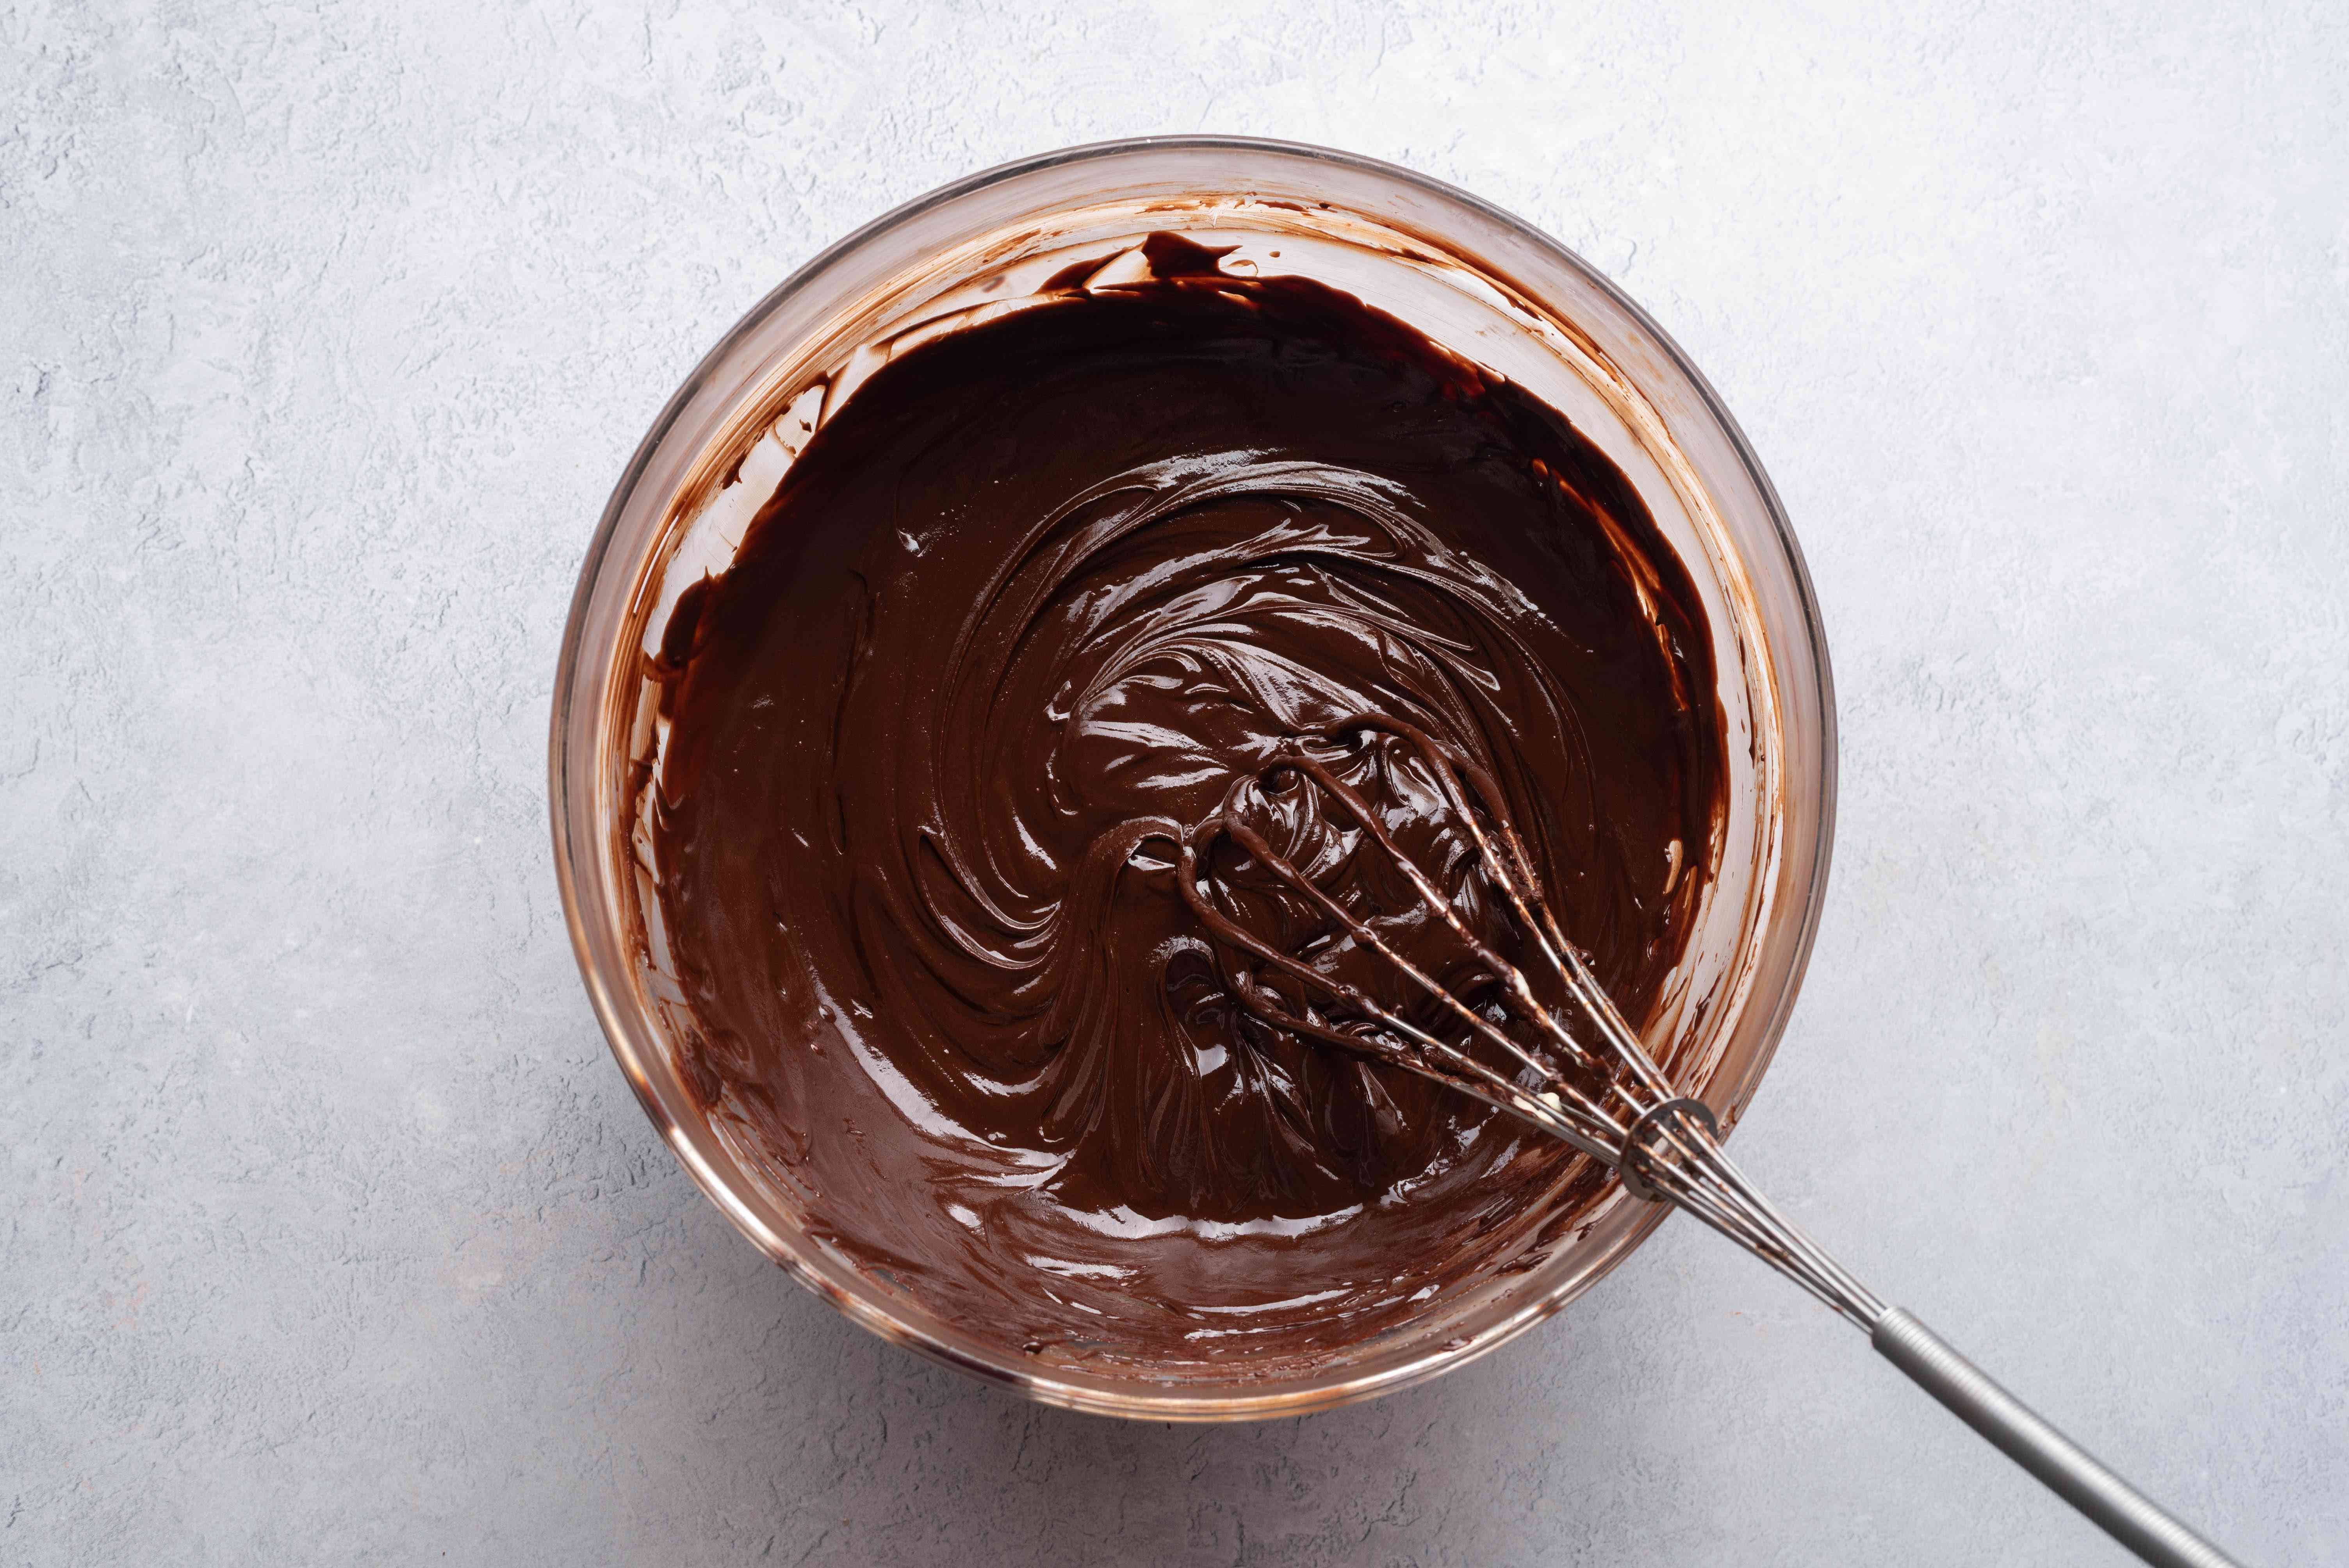 chocolate sauce in a bowl